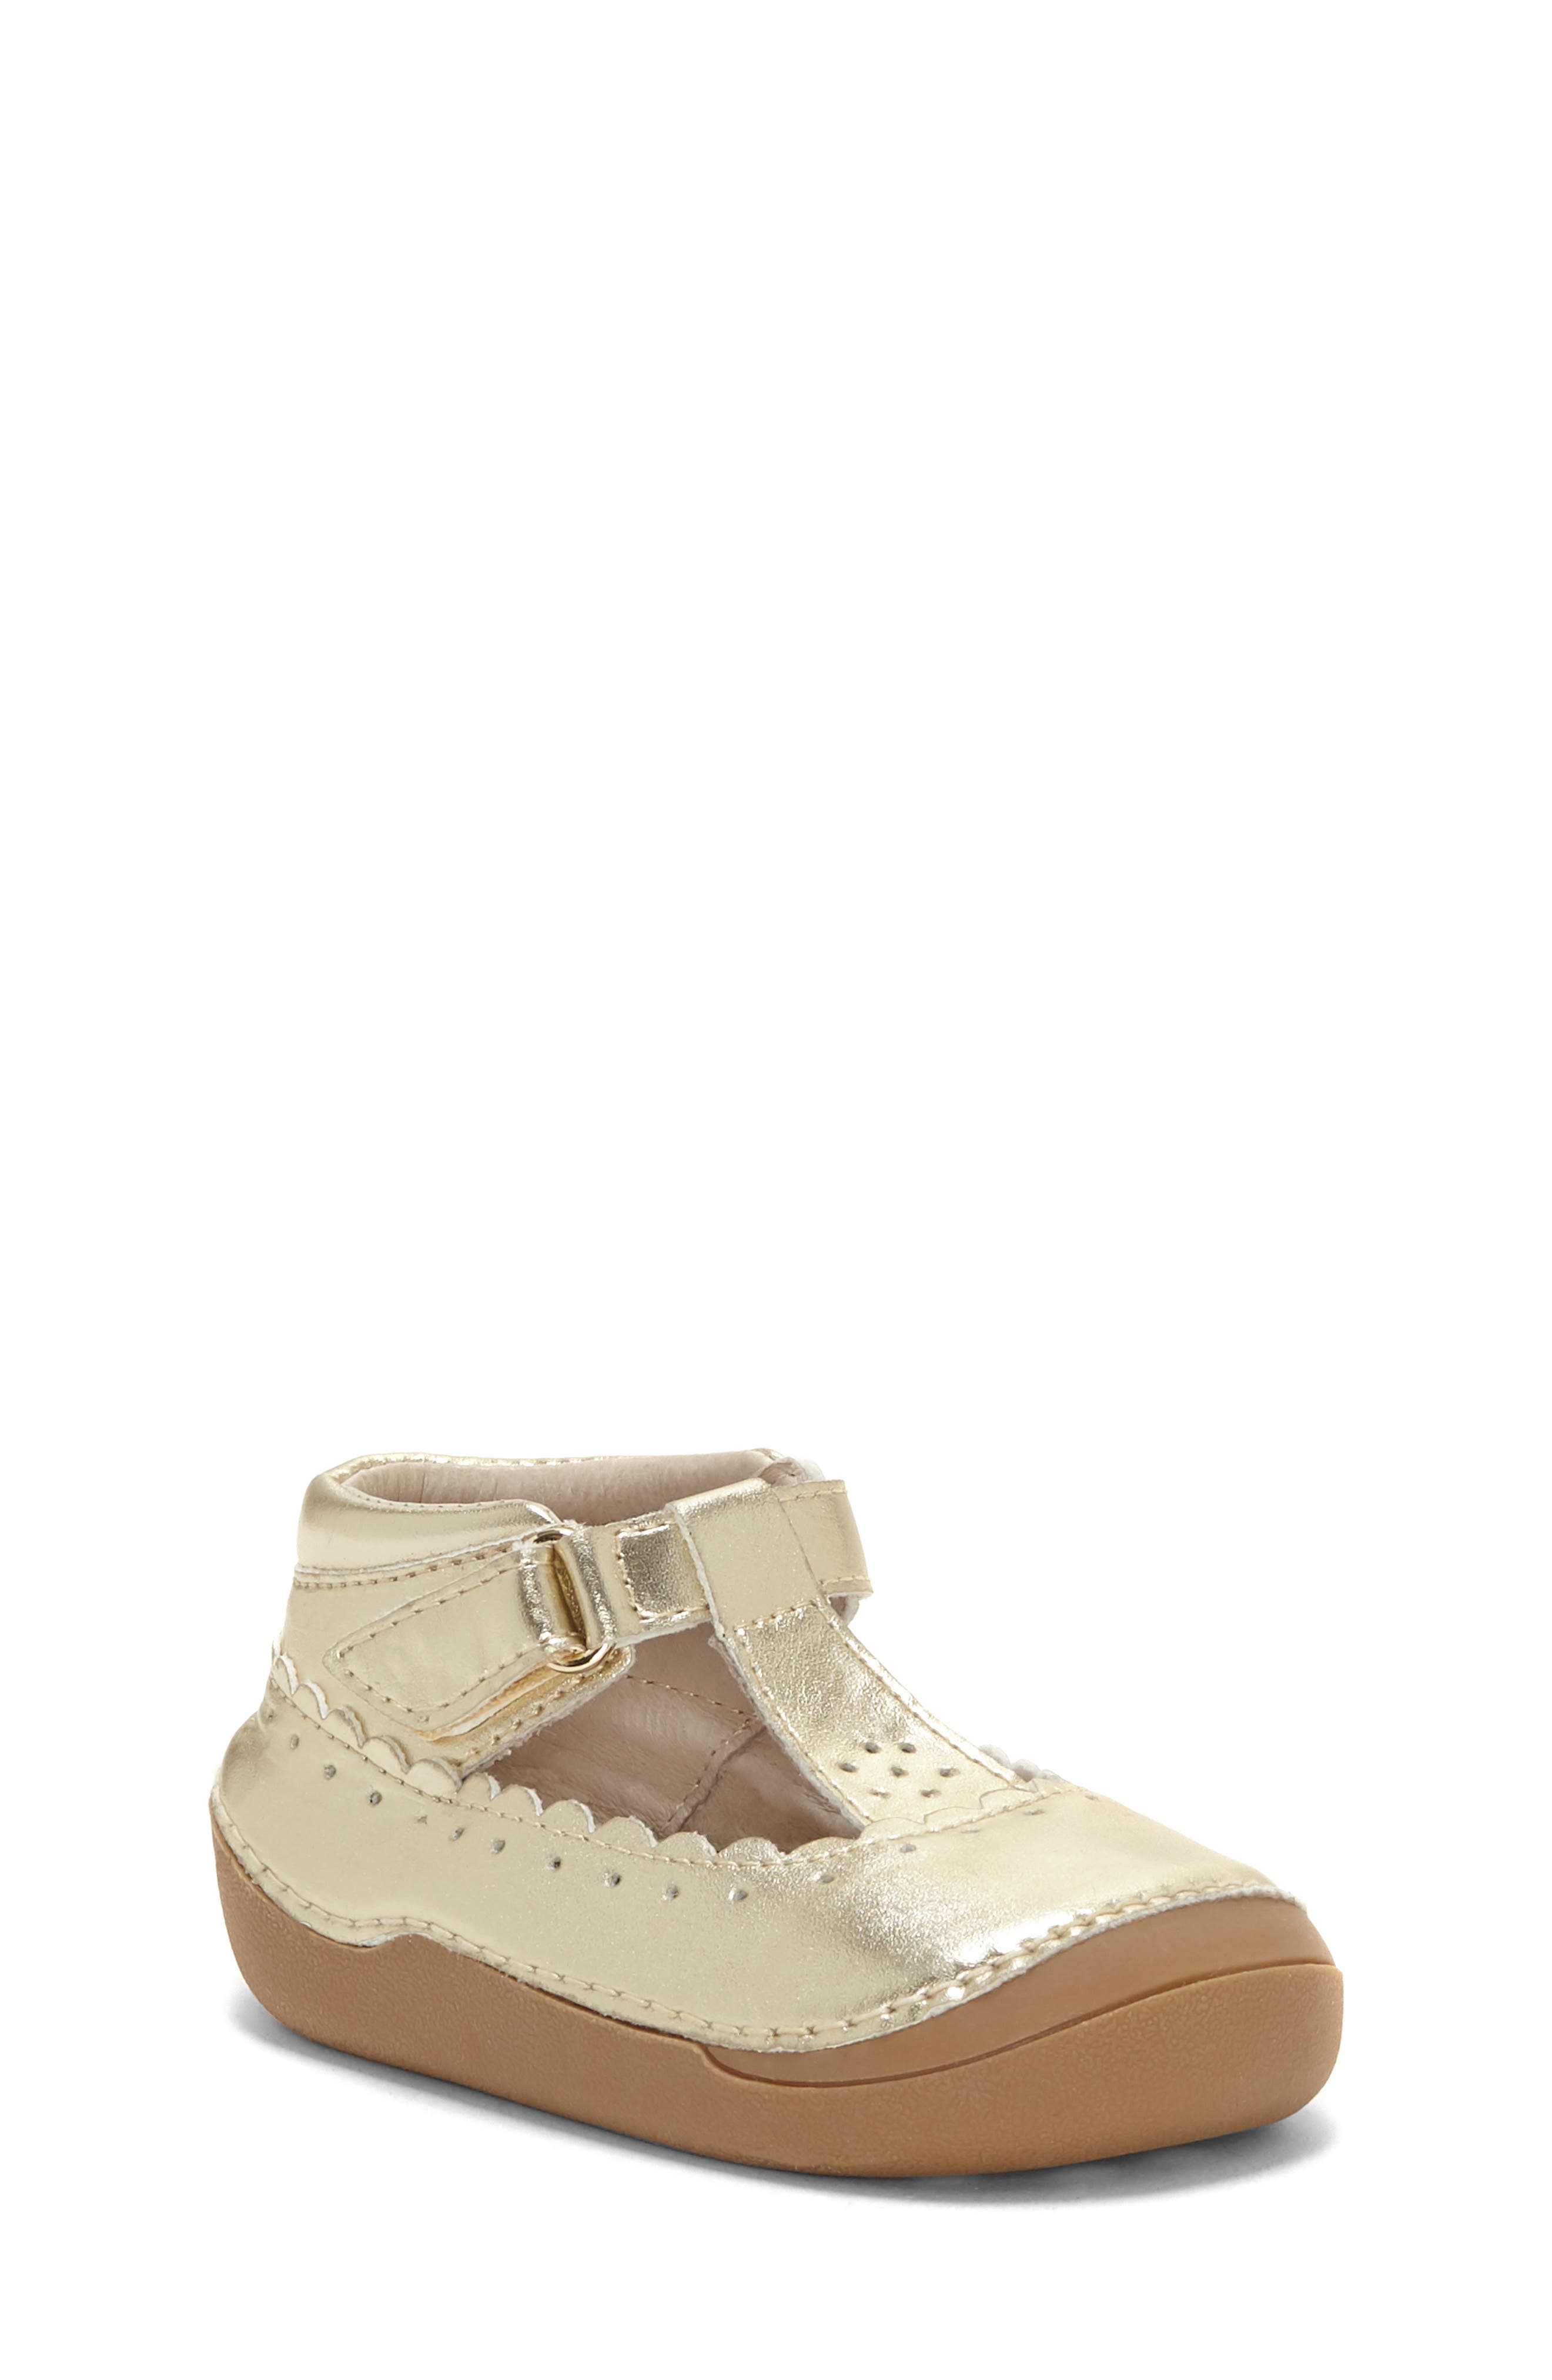 Gavina T-Strap Sneaker Bootie, Main, color, SOFT GOLD